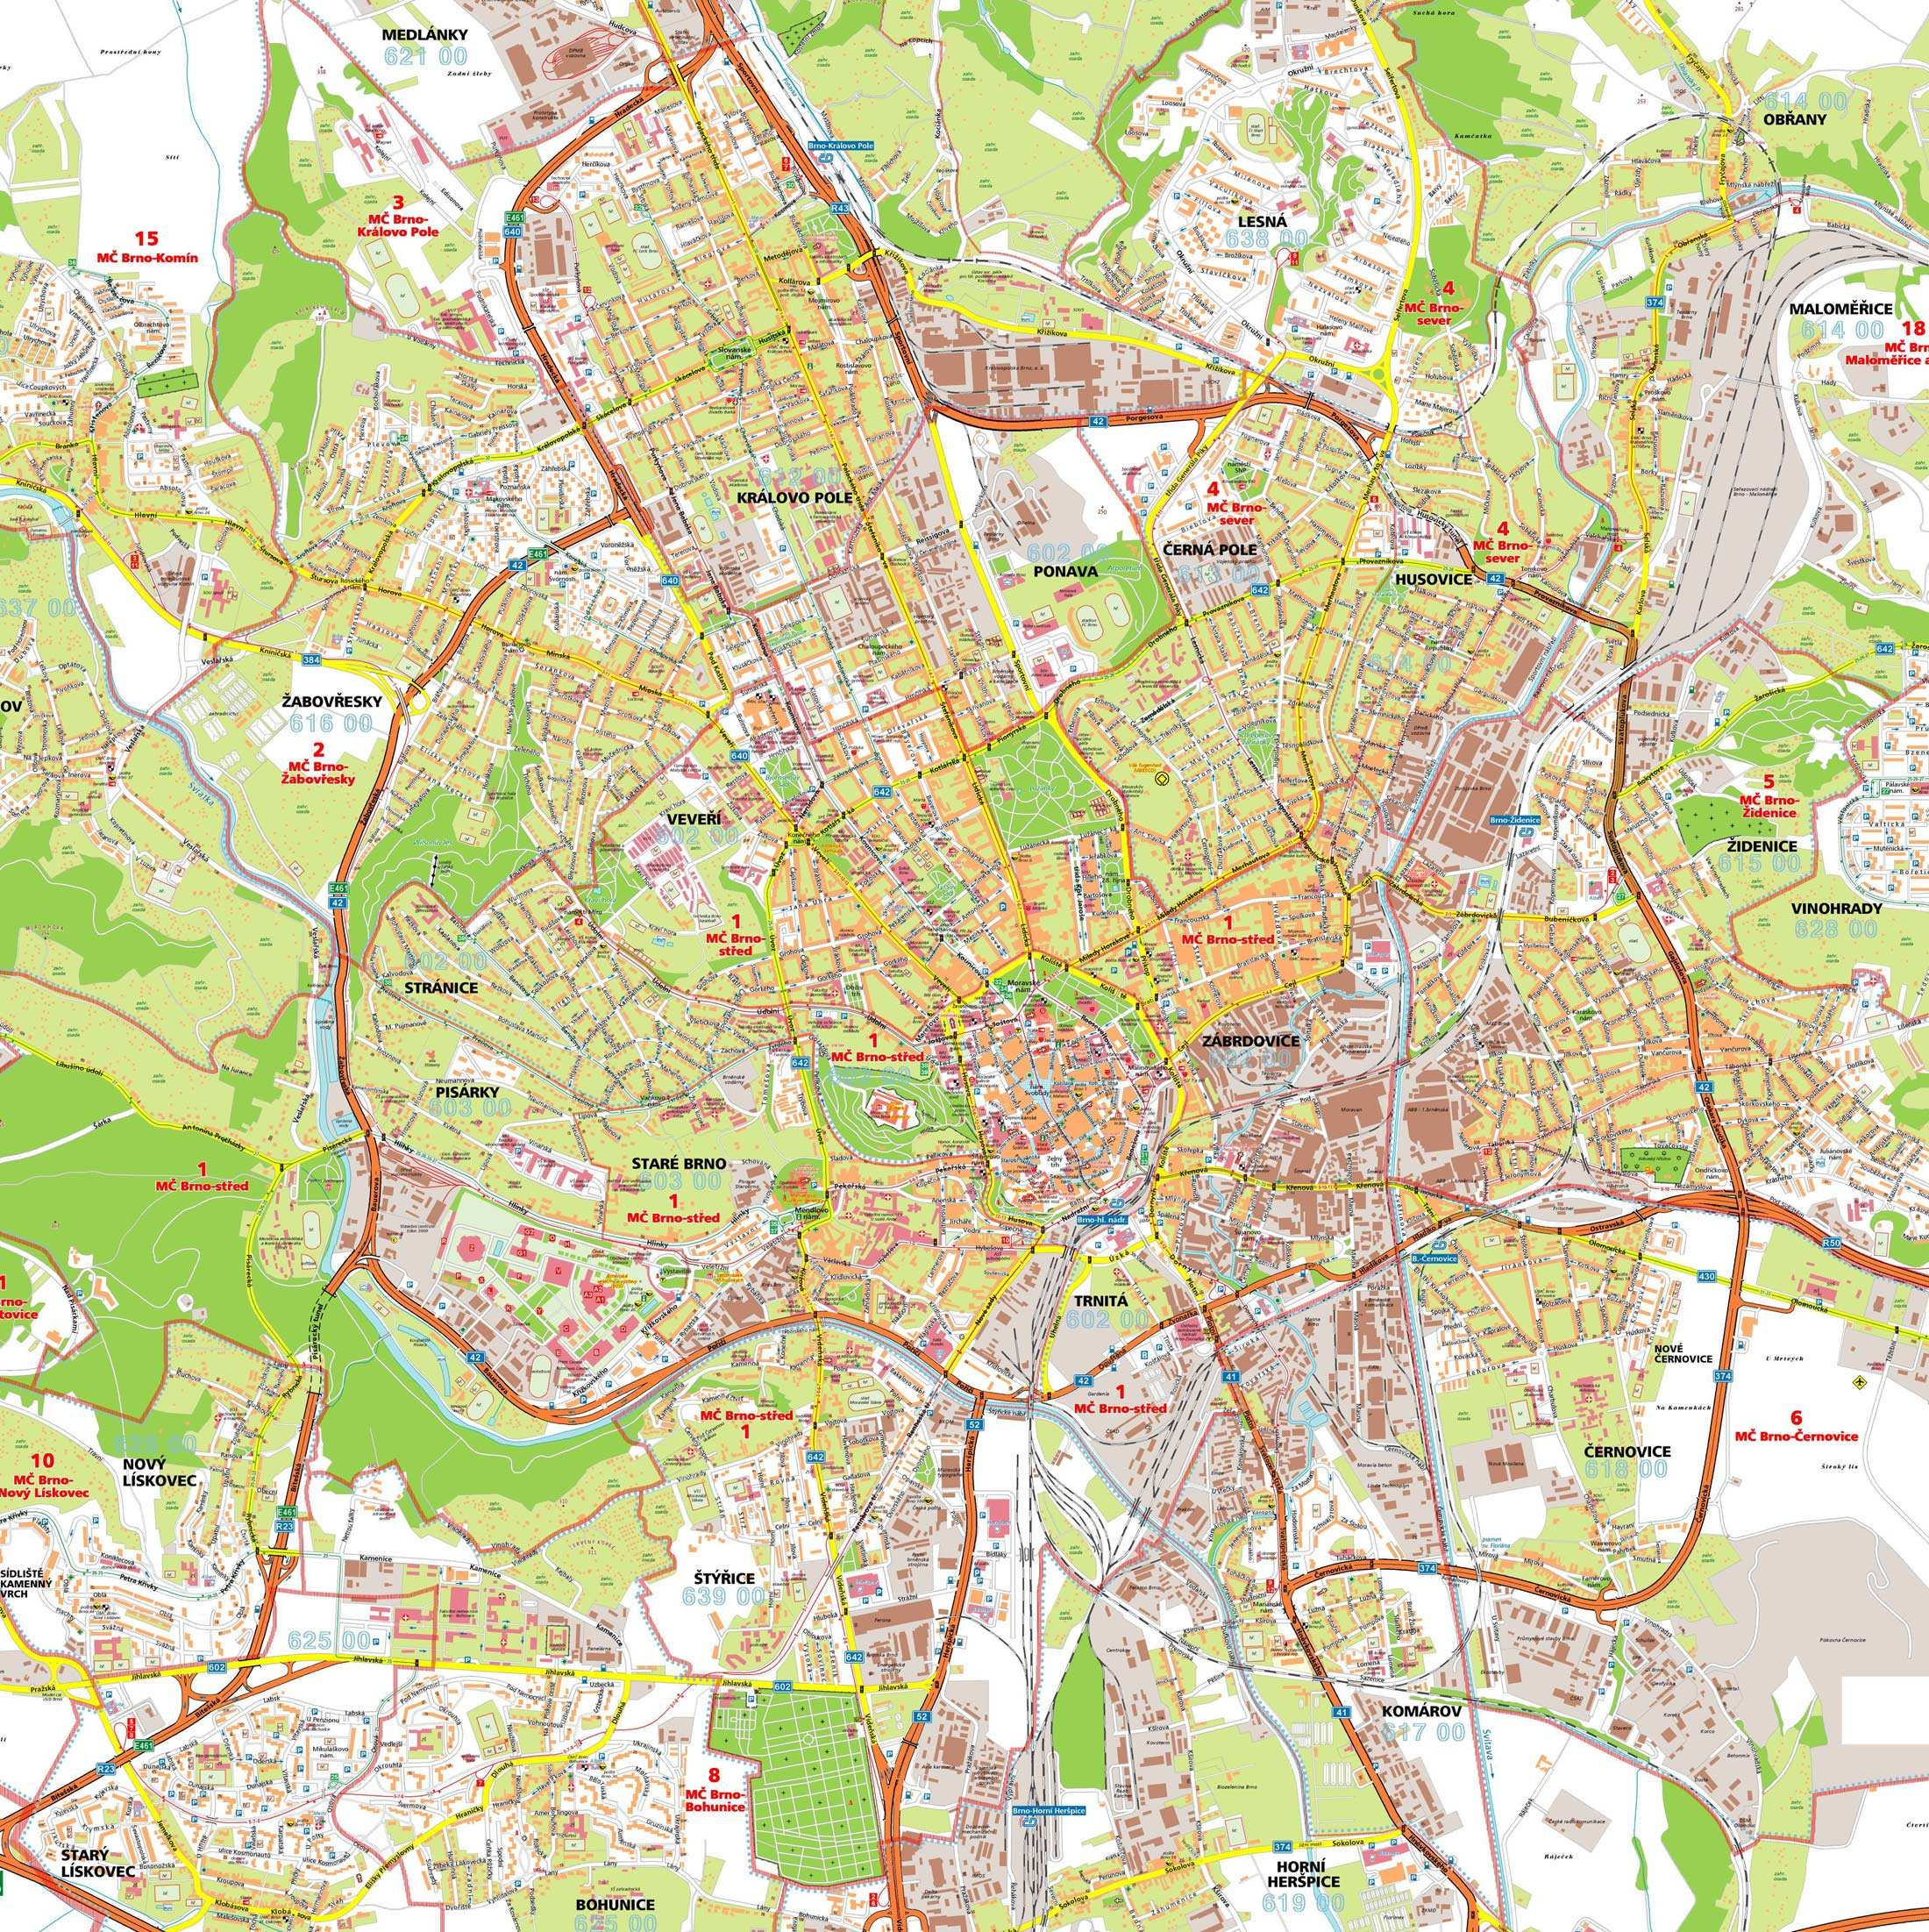 brno bohunice mapa Large Brno Maps for Free Download and Print | High Resolution and  brno bohunice mapa